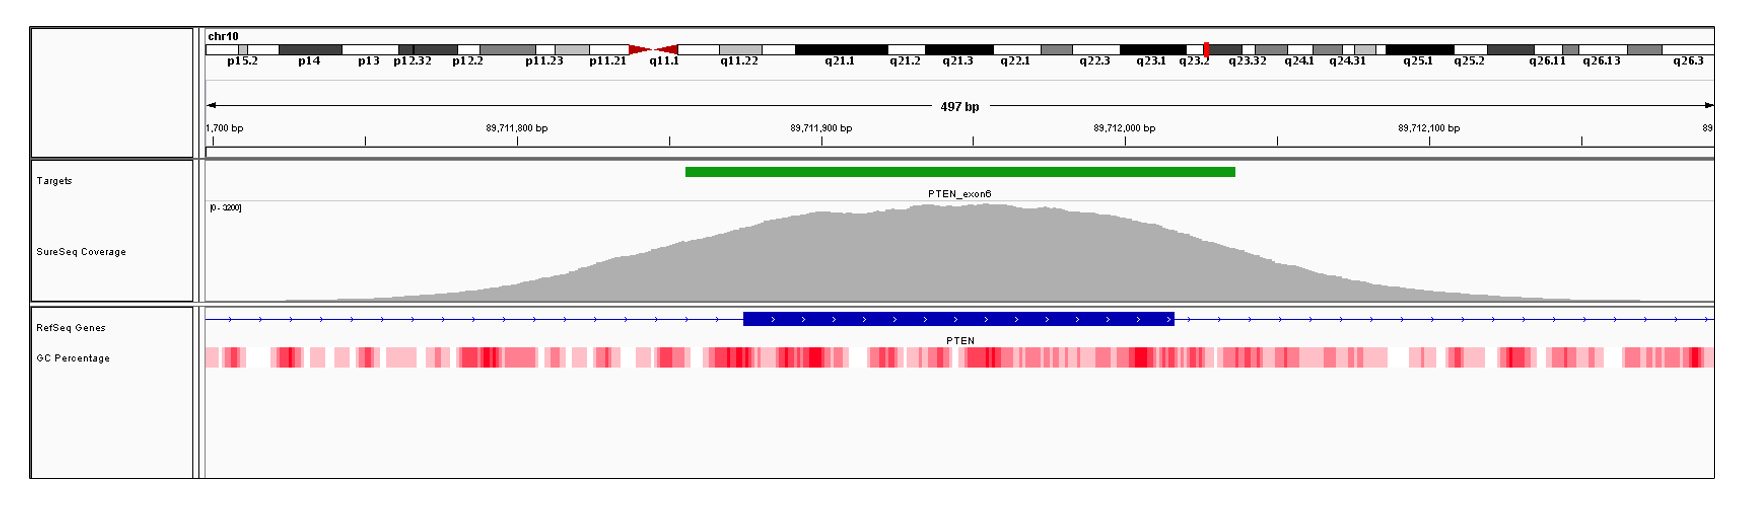 PTEN Exon 6 (hg19 chr10:89711875-89712016). Depth of coverage per base (grey). Targeted region (green). Gene coding region as defined by RefSeq (blue). GC percentage (red). Image